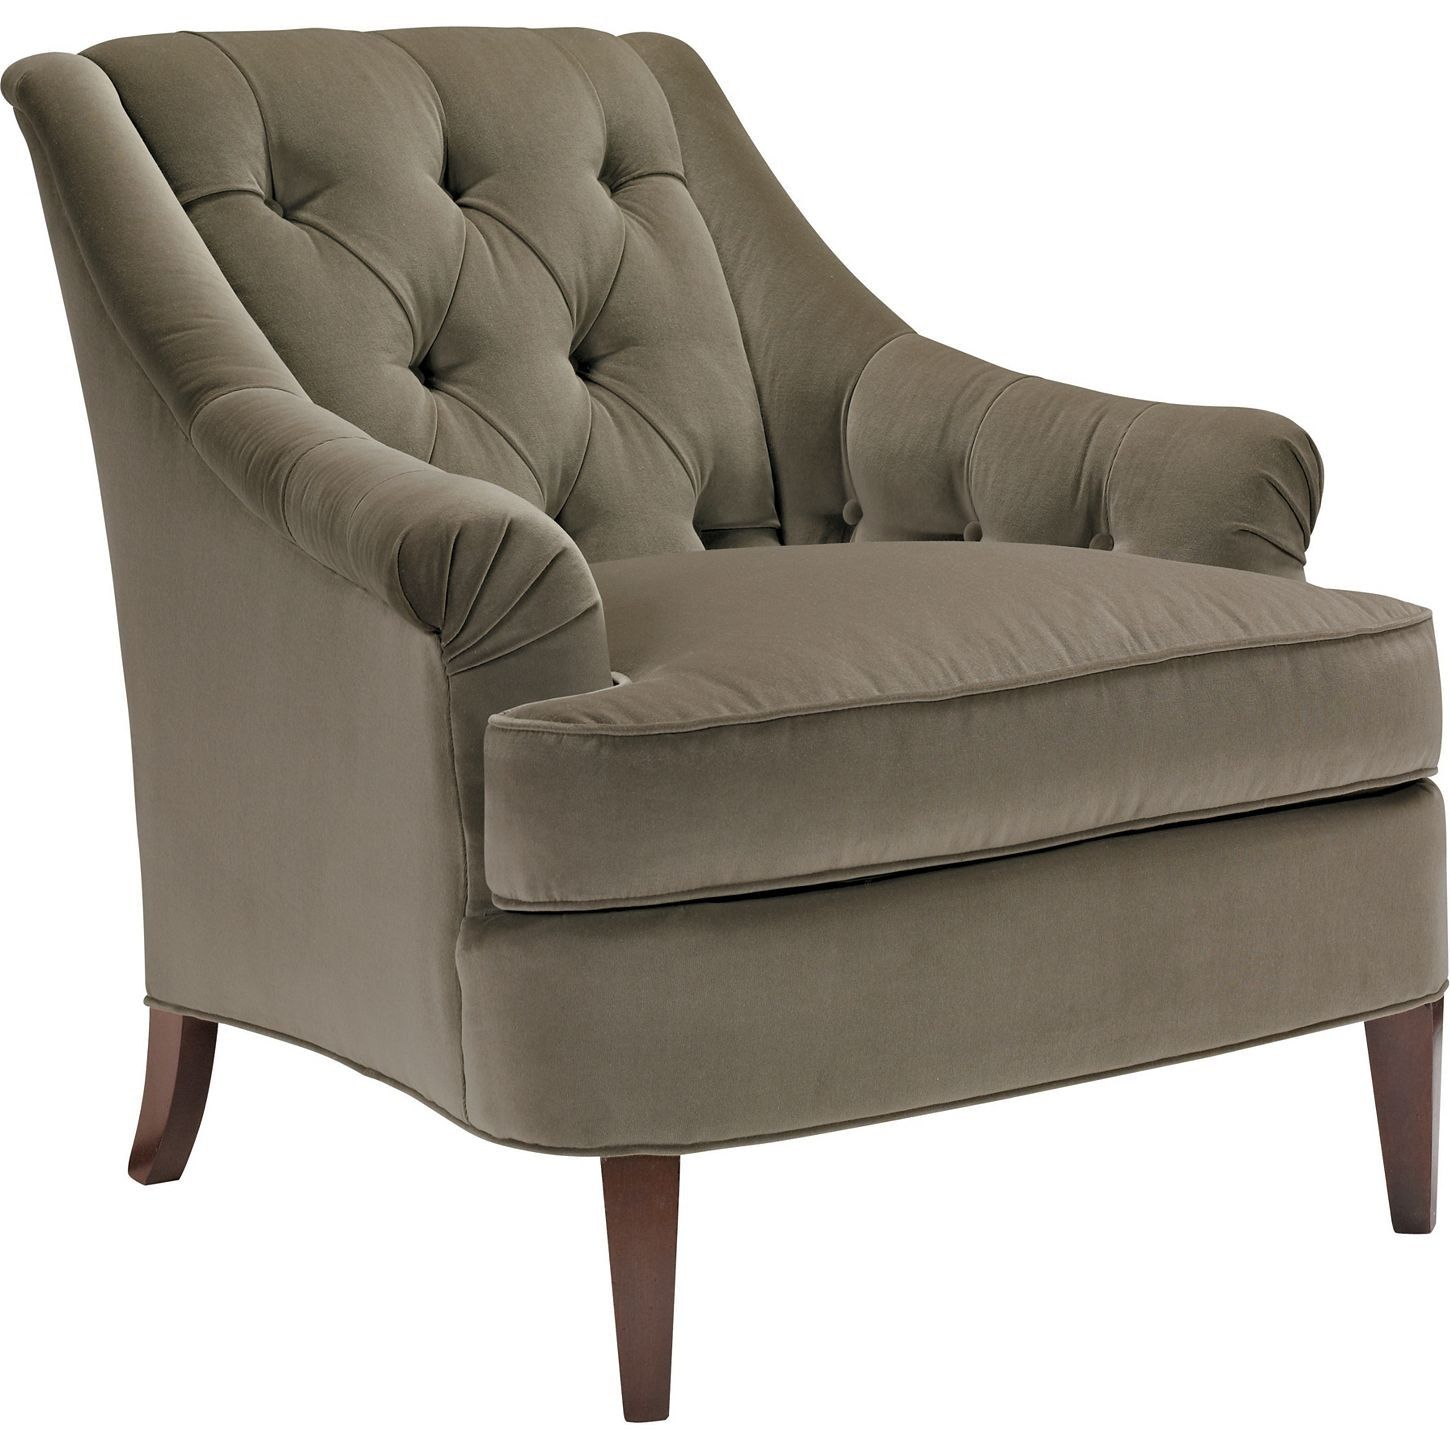 Marler Tufted Chair by HICKORY CHAIR Hickory chair